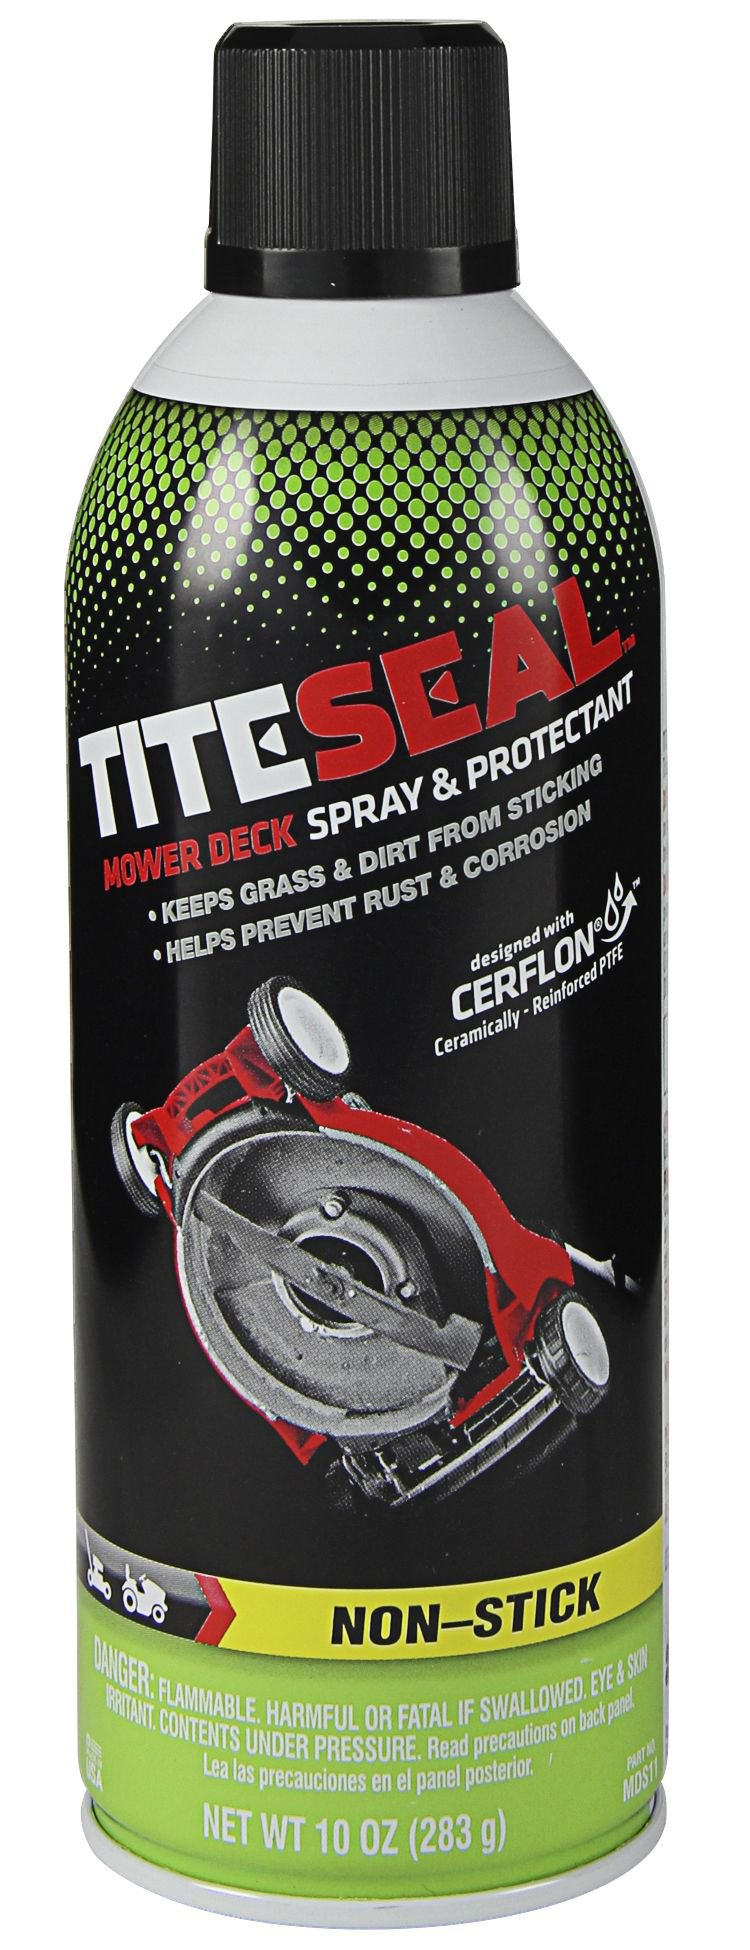 Tite-Seal MDS11/6-6PK Mower Deck Spray and Protectant 60. Fluid_Ounces, 6 Pack by Tite-Seal (Image #1)